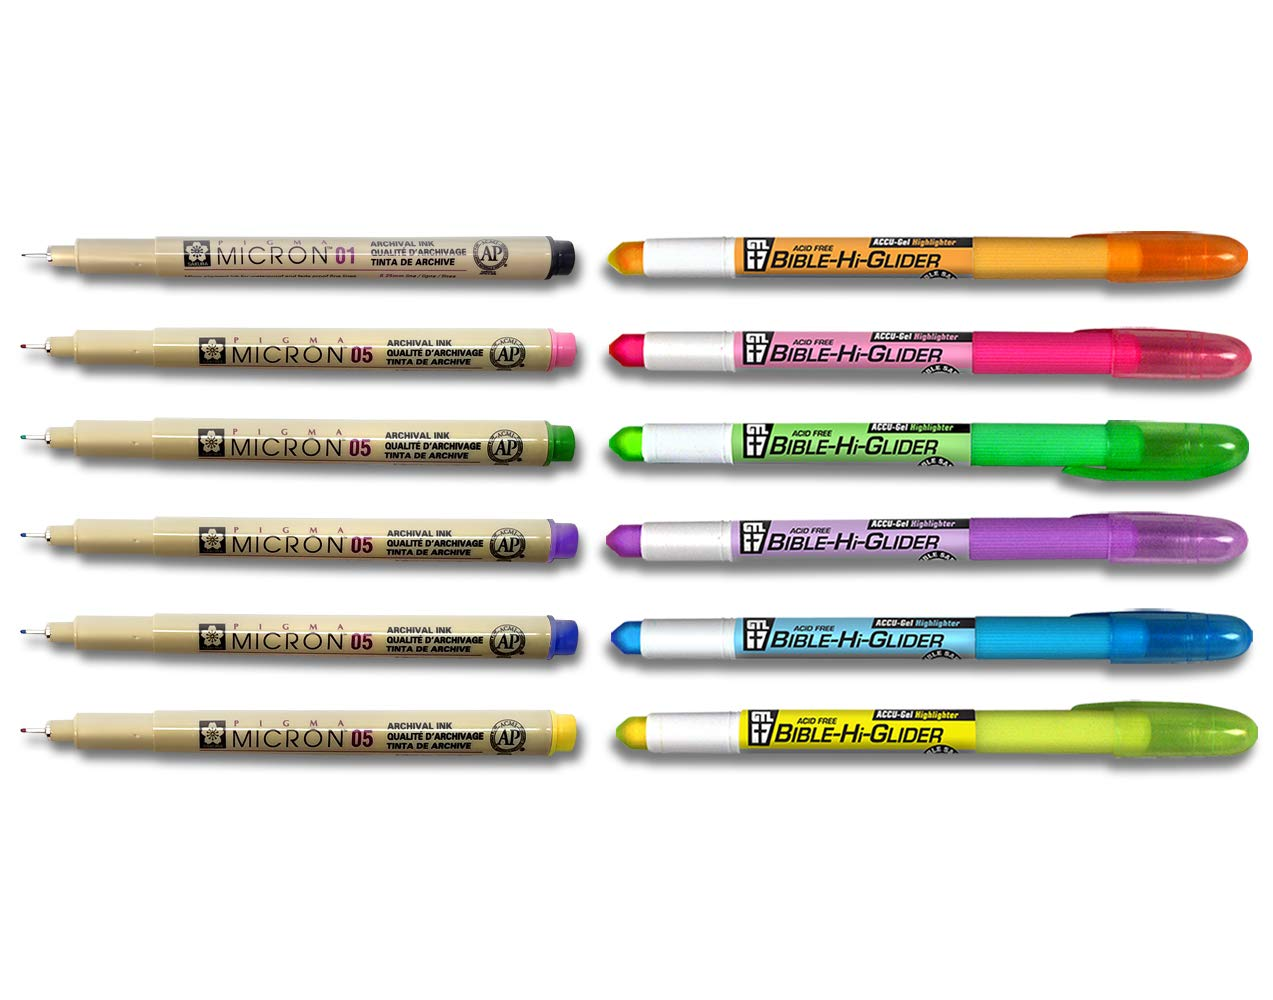 Accu-Gel Bible Highlighter Study Kit (Pack of 6) + Pigma Micron 01 Fine & 05 Medium Point Bible Study Kit (Set of 6) - The Deluxe Multi-Color Study Kit by G.T. Luscombe Company, Inc. (Image #2)